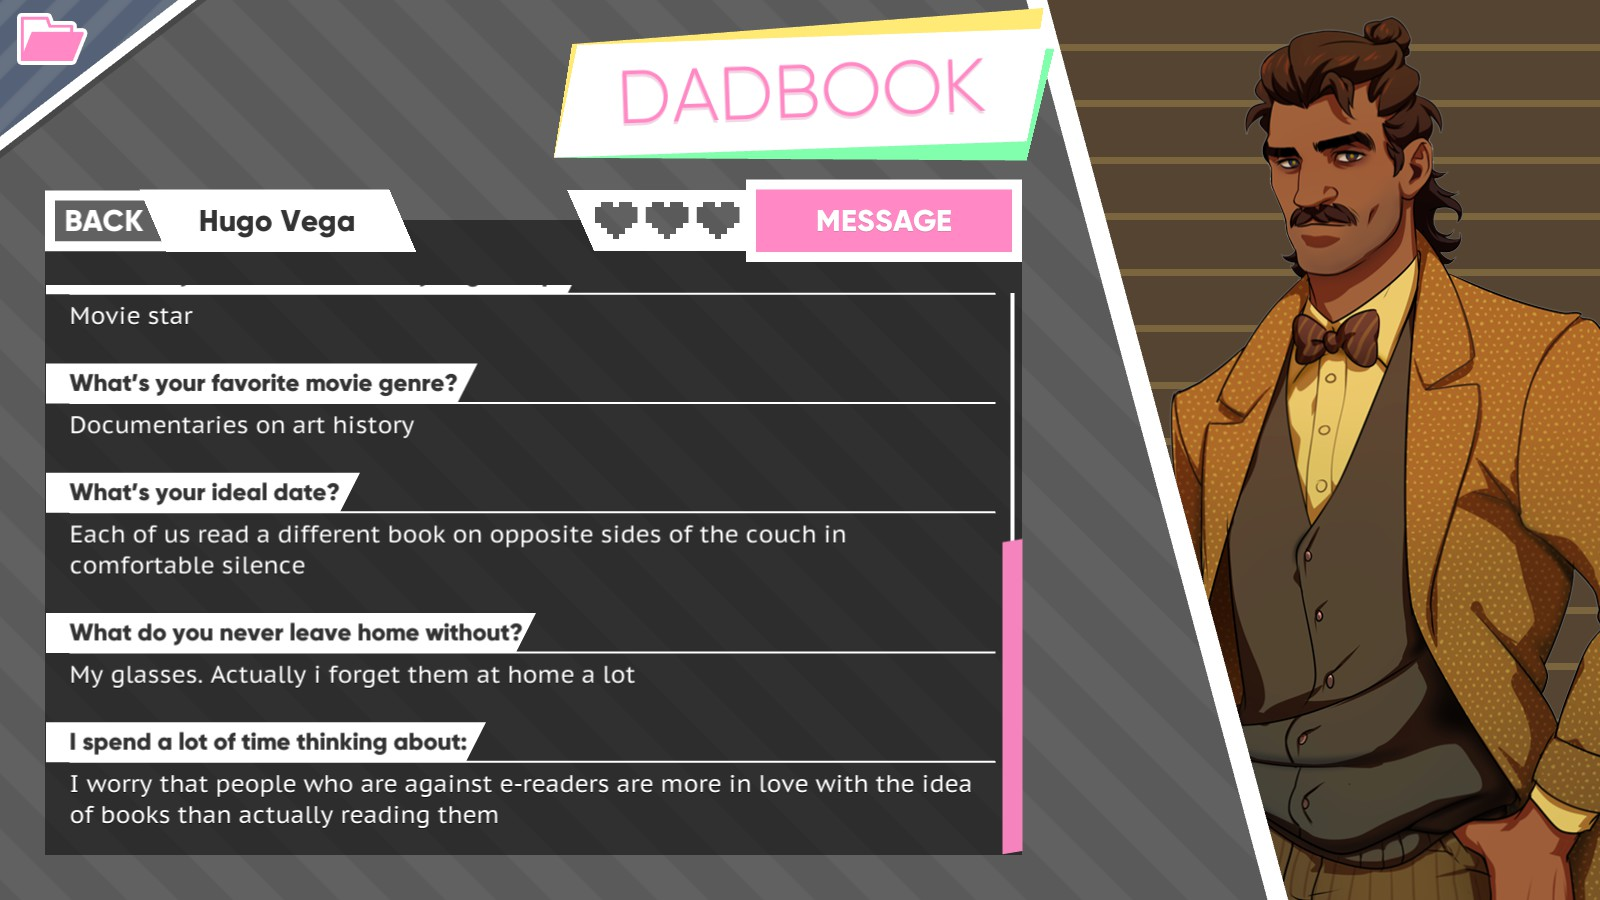 Dream Daddy Hugo DadBook Profile